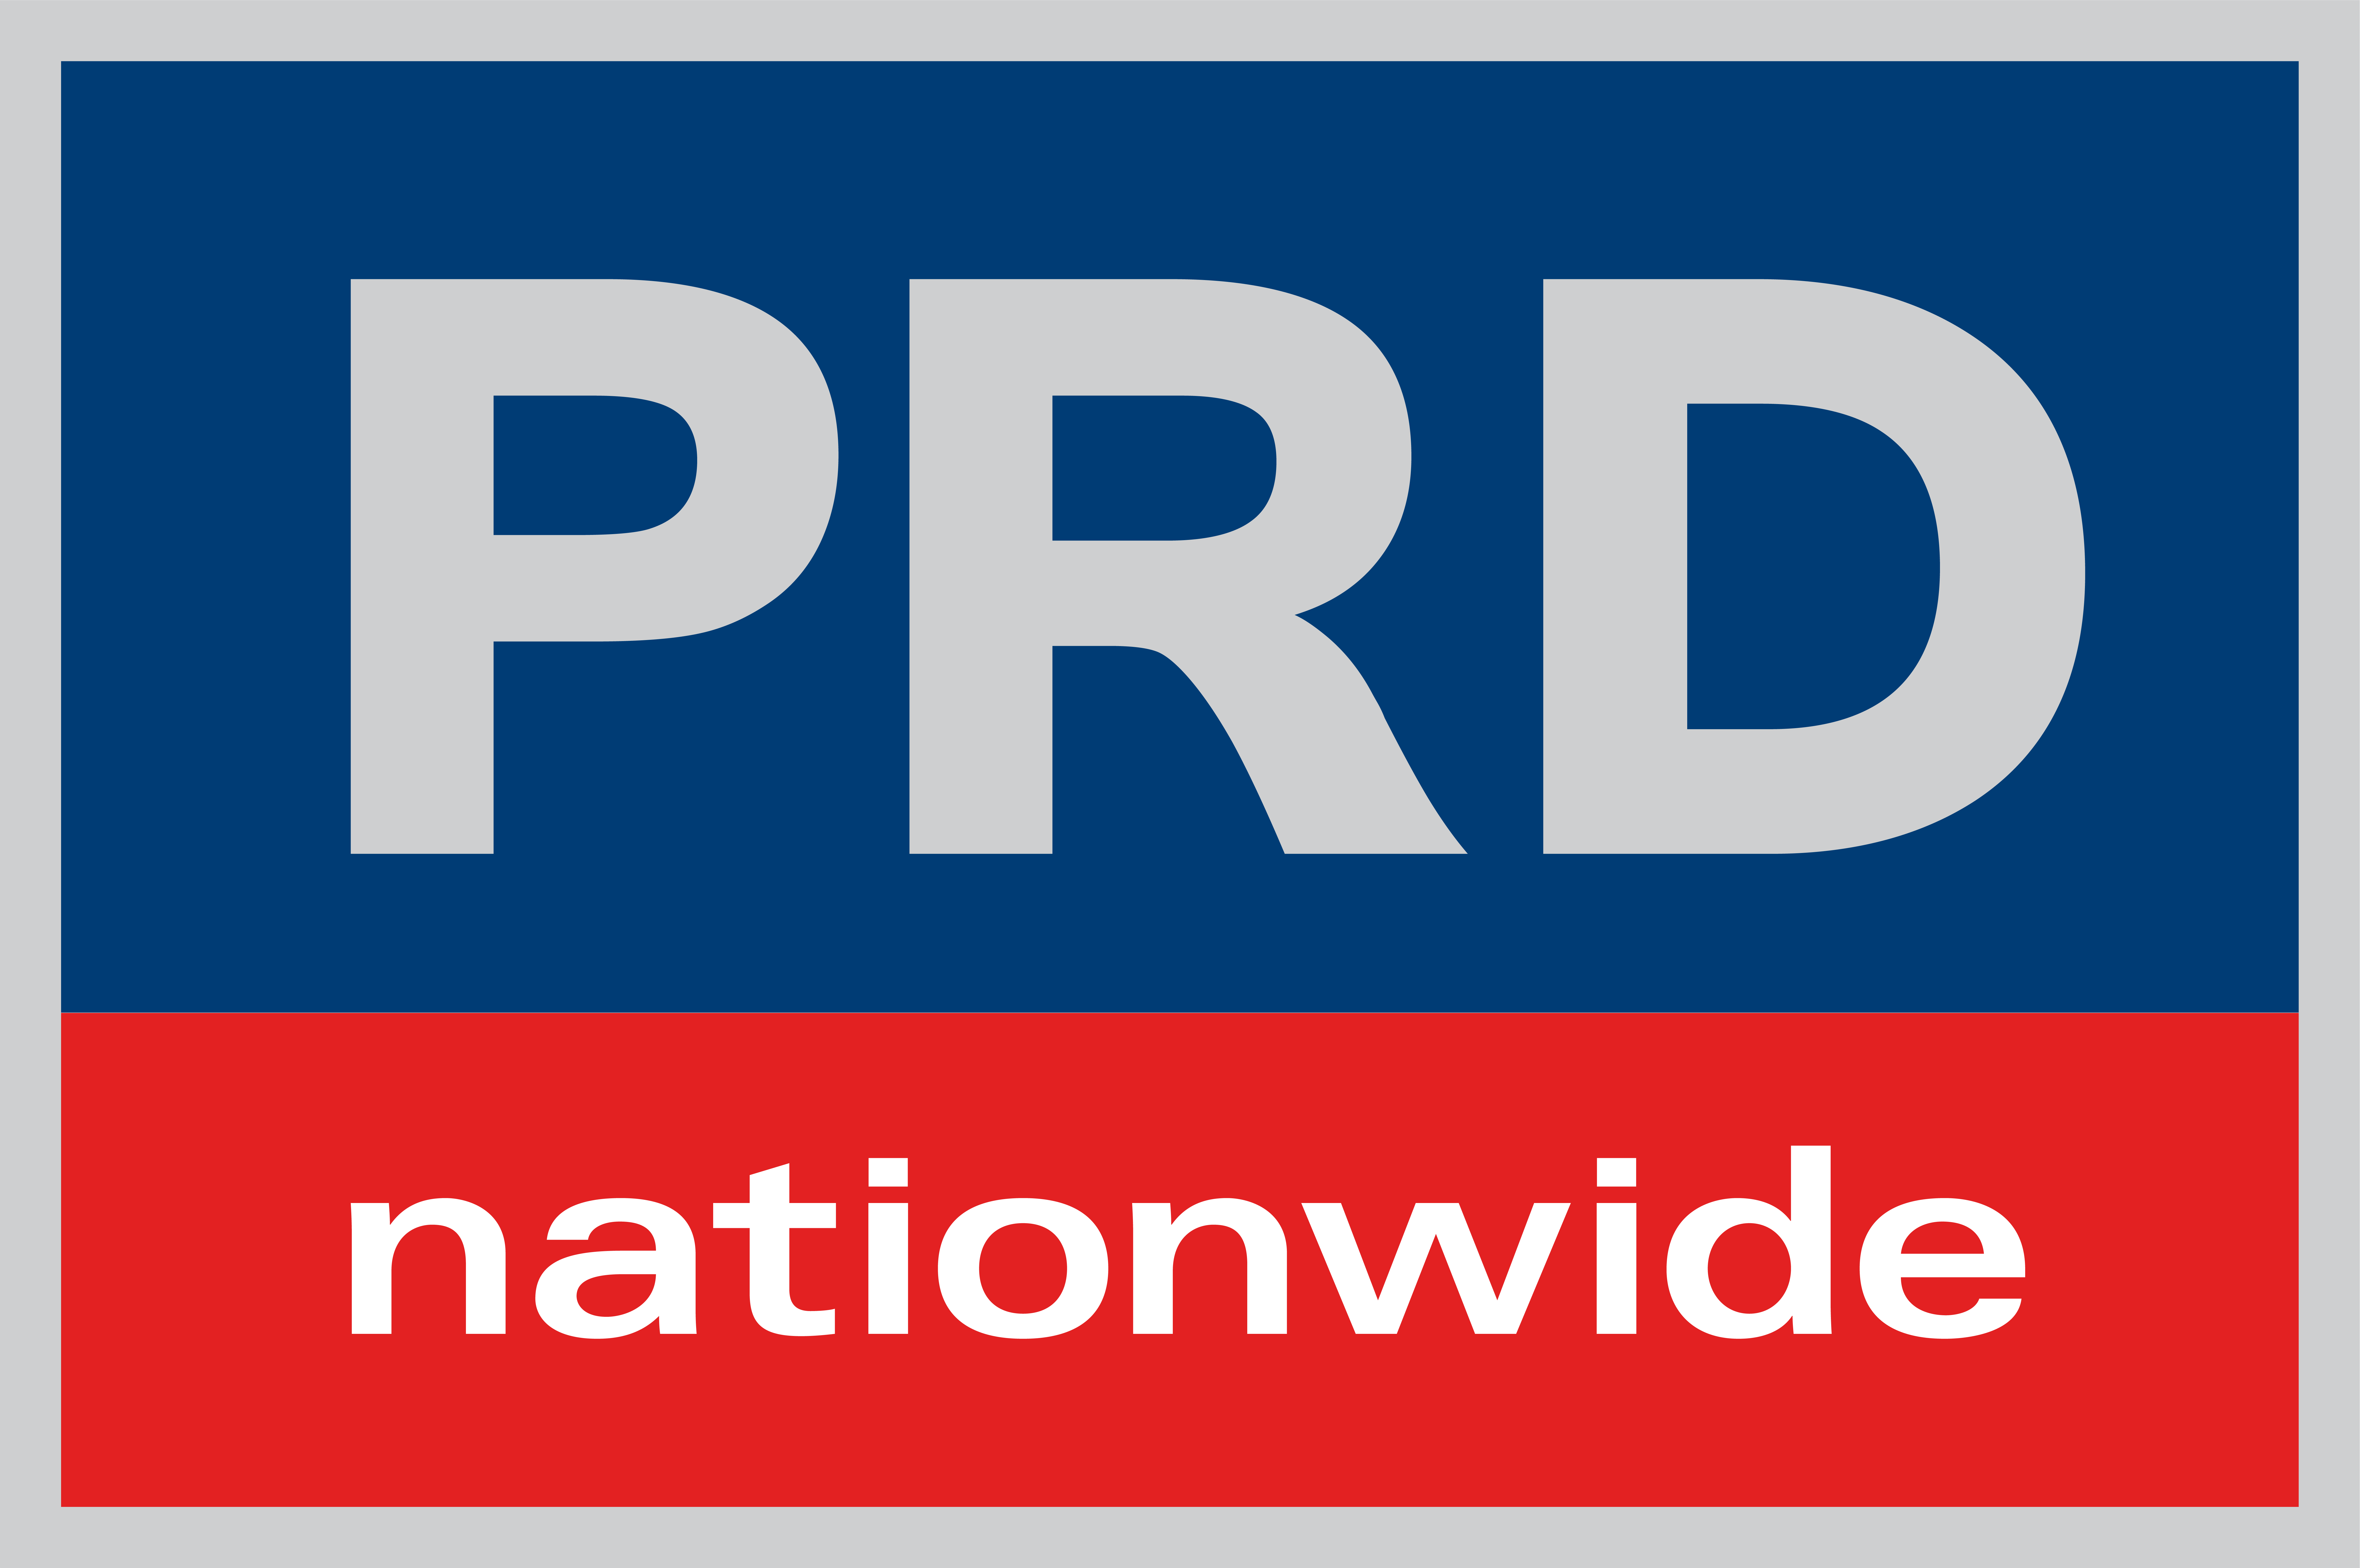 PRD Nationwide logo